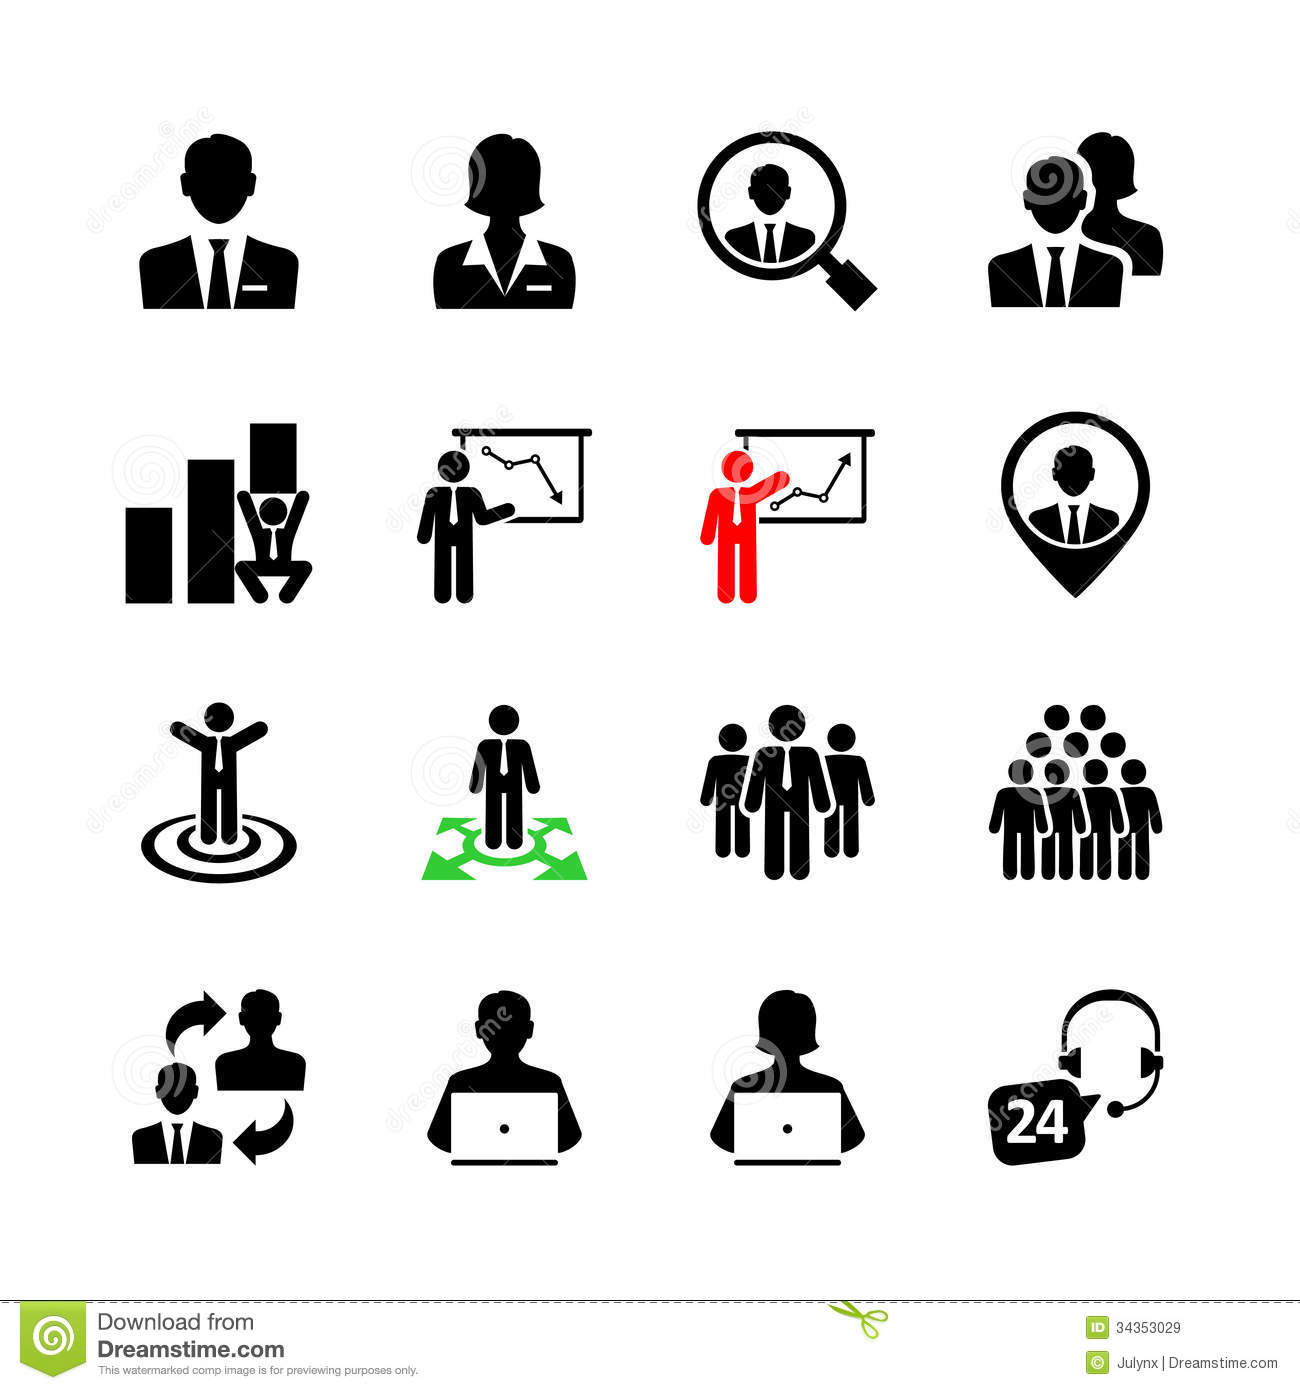 Business web icon set stock vector. Illustration of